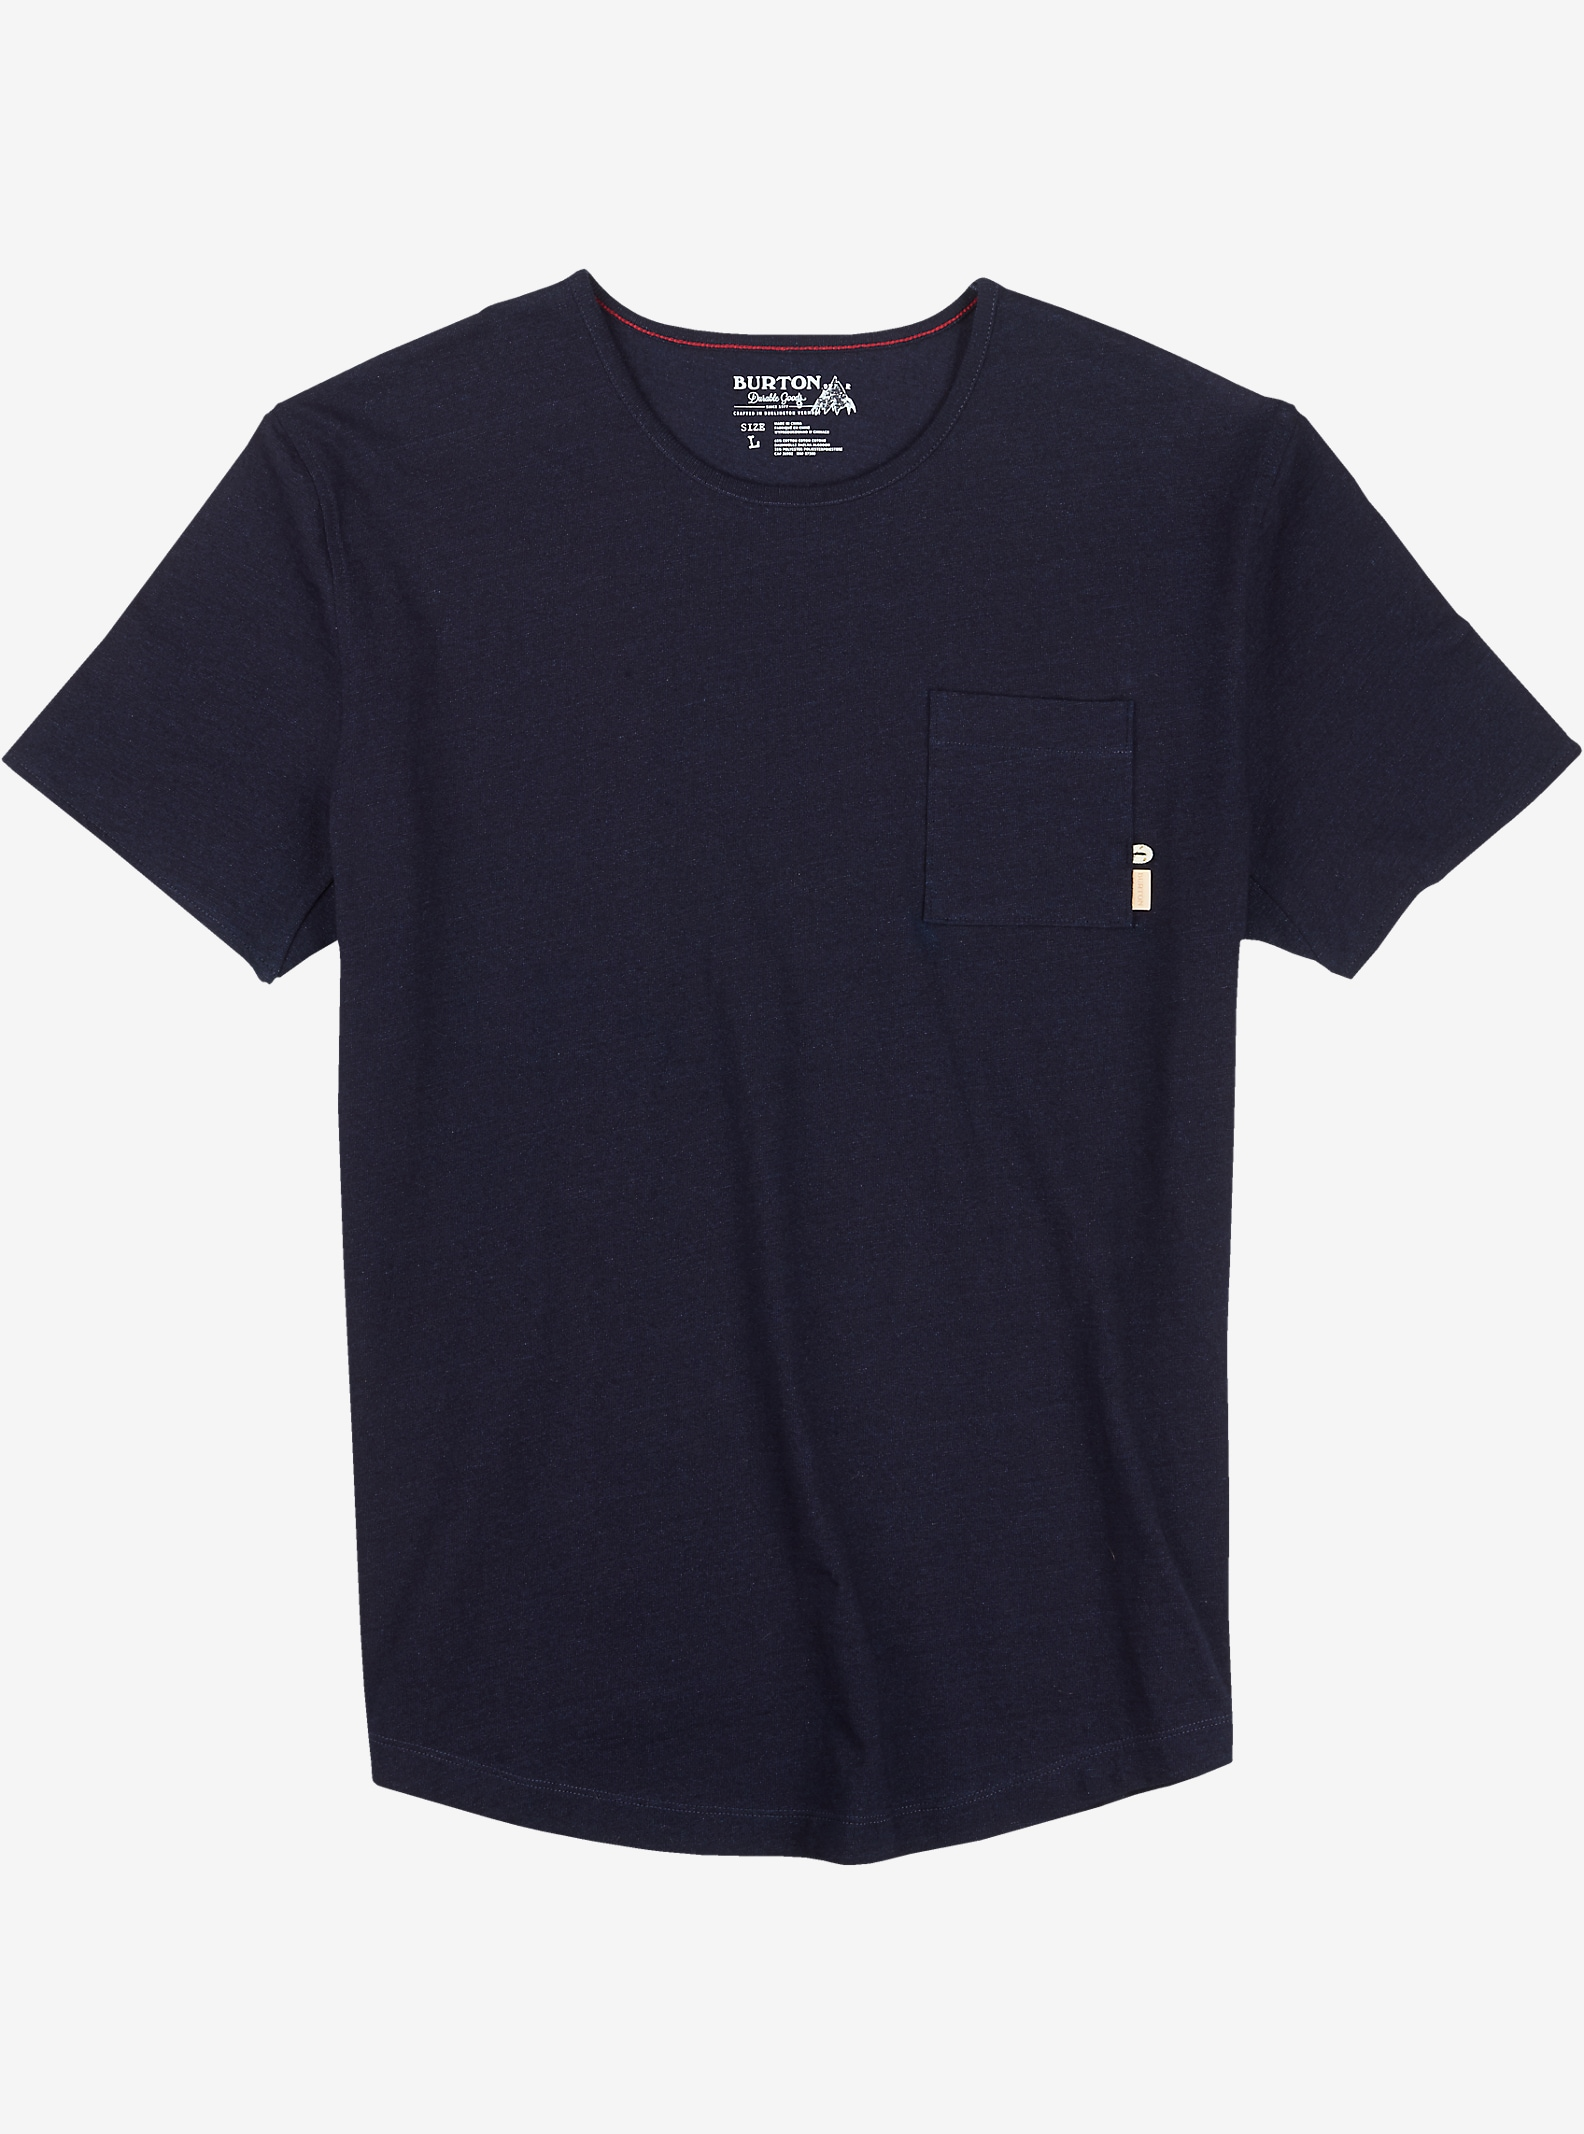 Burton Reed Short Sleeve Pocket T Shirt shown in Indigo